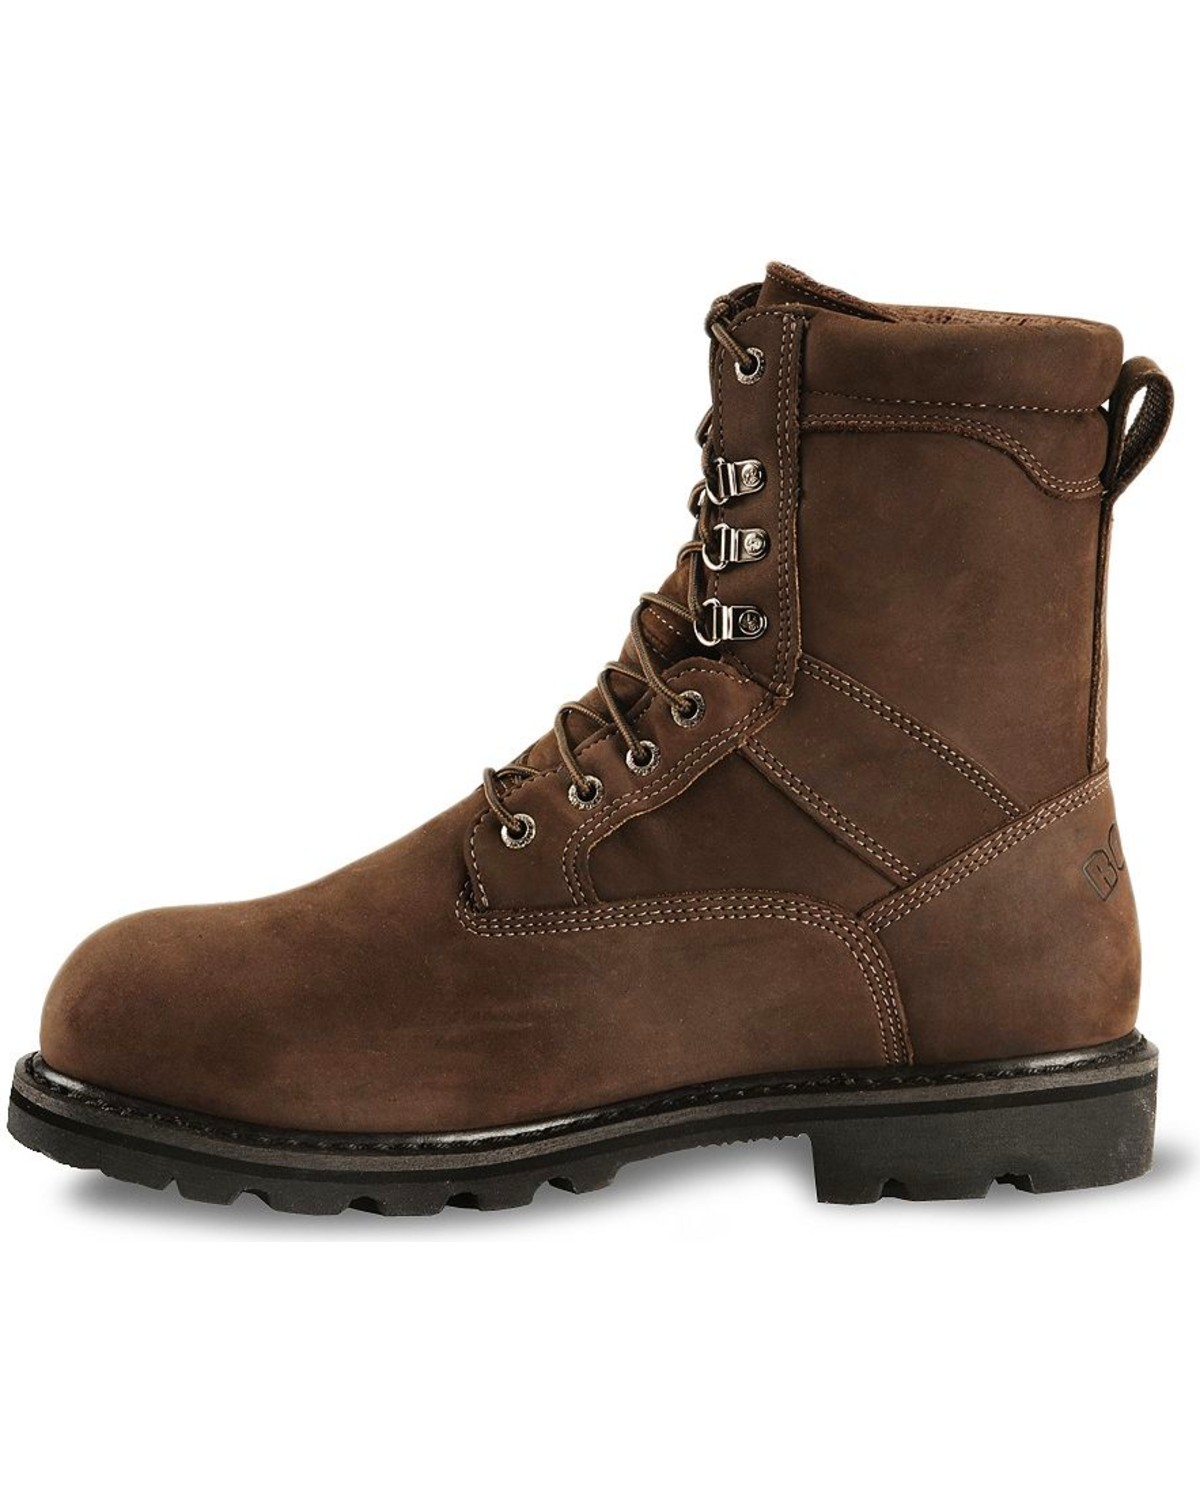 photo regarding Red Wing Shoes Coupon Printable identify Rocky insulated get the job done boots : Cinemark tinseltown el paso